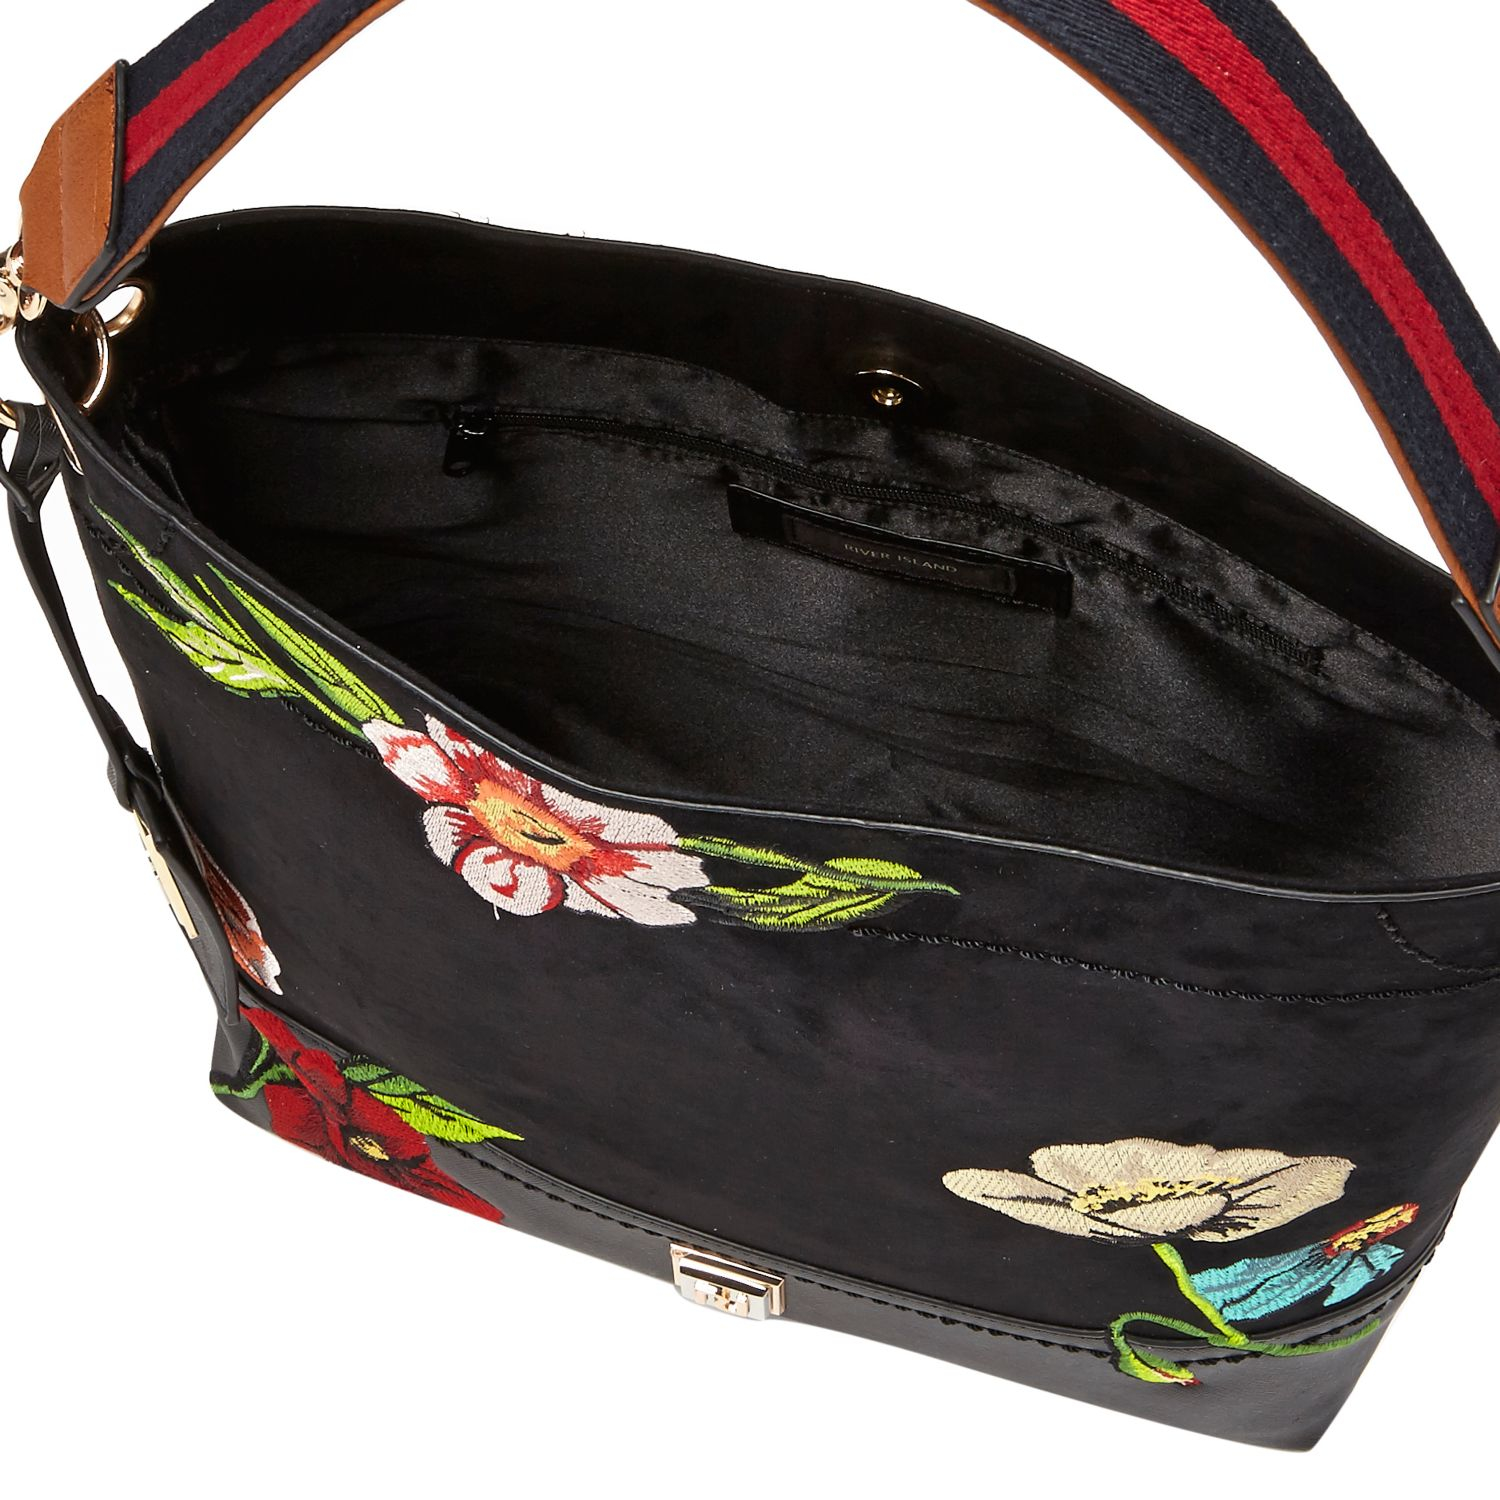 Lyst - River Island Black Floral Embroidered Slouch Bag In Black